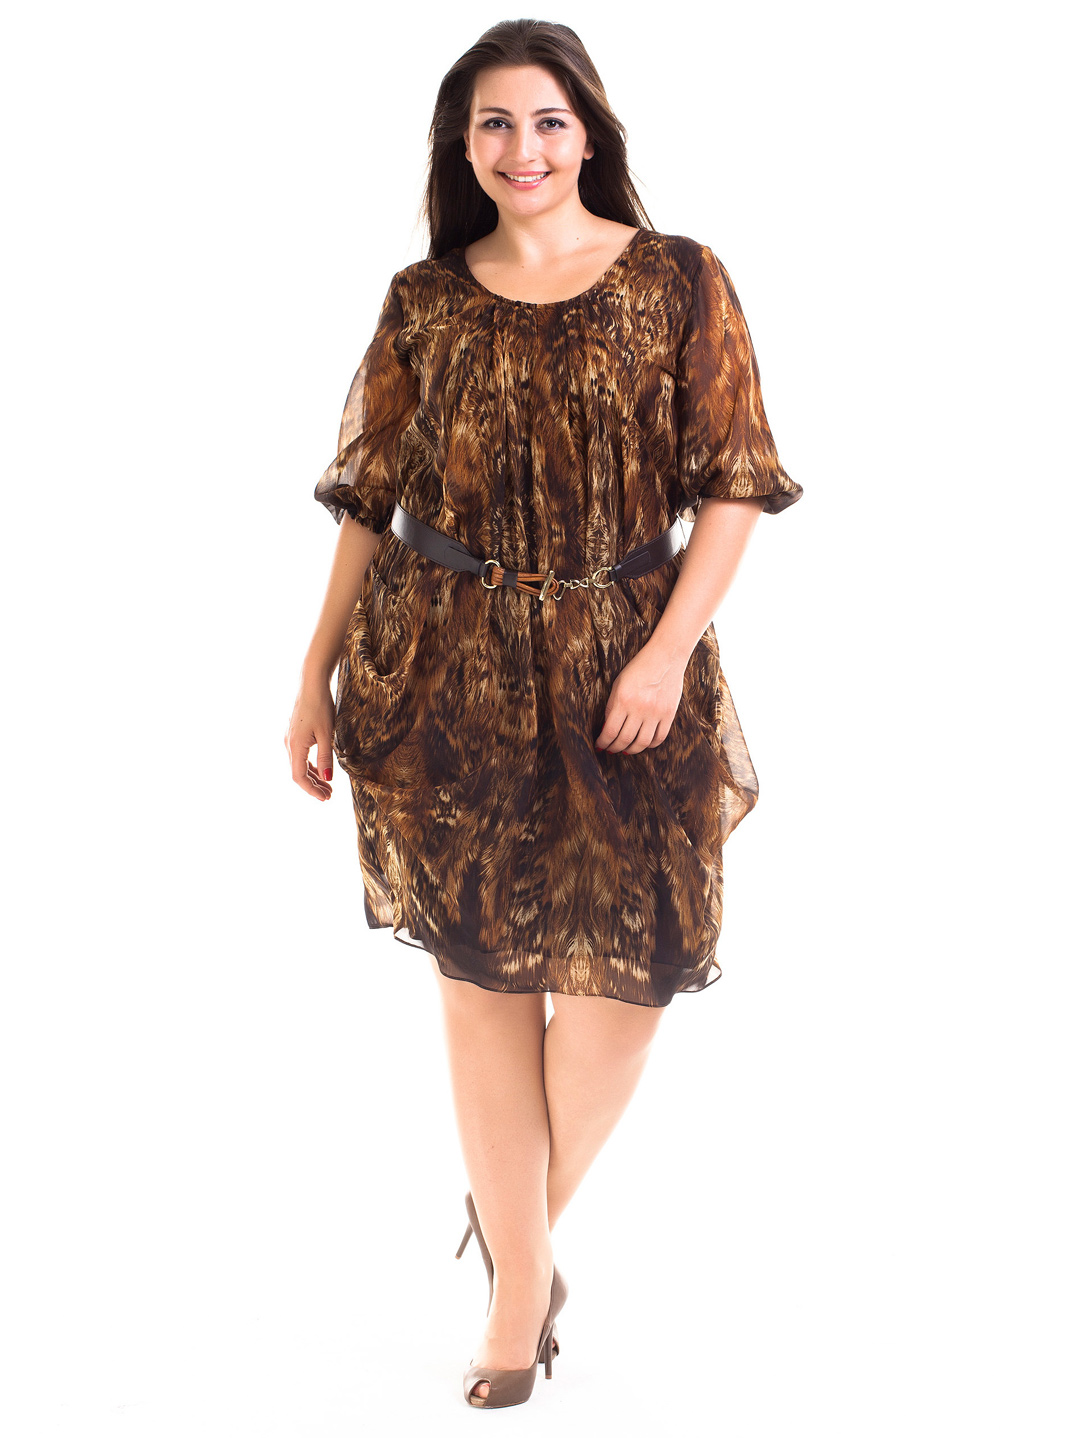 Shop for plus size dresses with ASOS. Shop the Curve range for beautiful plus size maxi, party & formal dresses in a range of colours in your favourite styles. Maya Plus Long Sleeved Maxi Dress with Delicate Sequin and Tulle Skirt. £ Paper Dolls Plus all over lace bardot dress in navy.